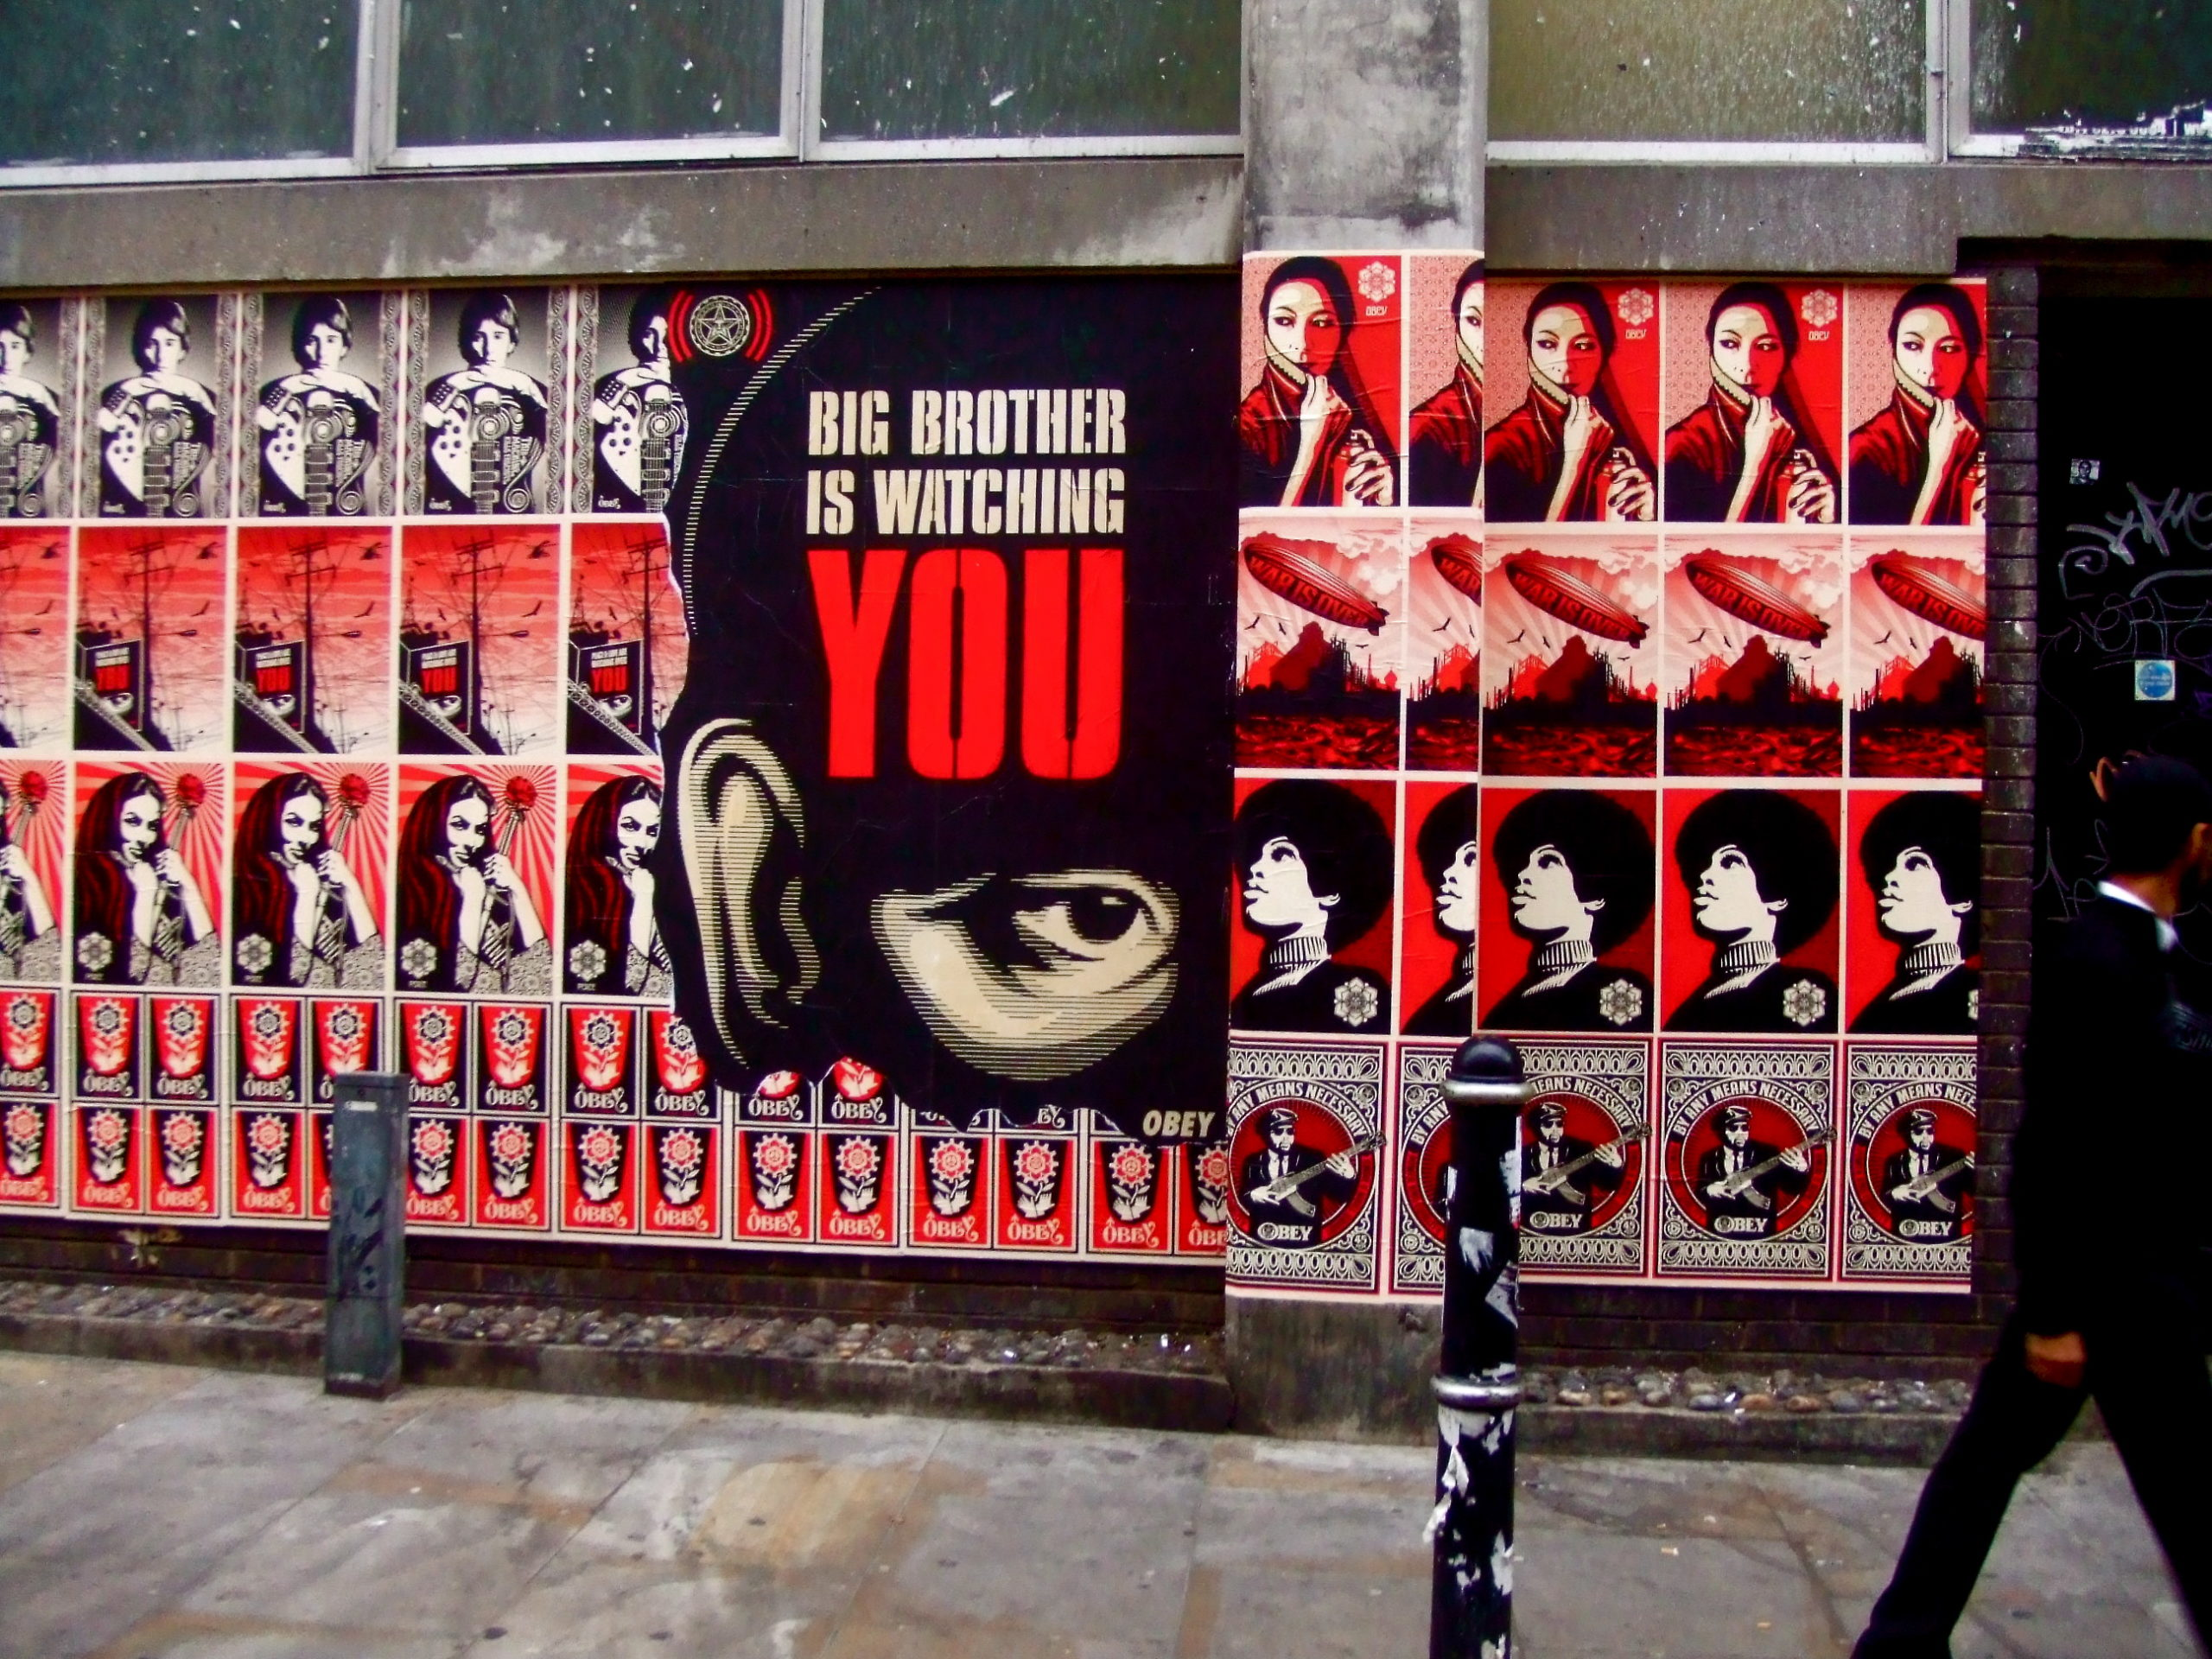 """Posters on a street, including a large poster saying """"Big Brother is watching you"""". Photo by Shepard Fairey in London: Big Brother Is Watching YOU CC BY-NC-ND 2.0"""